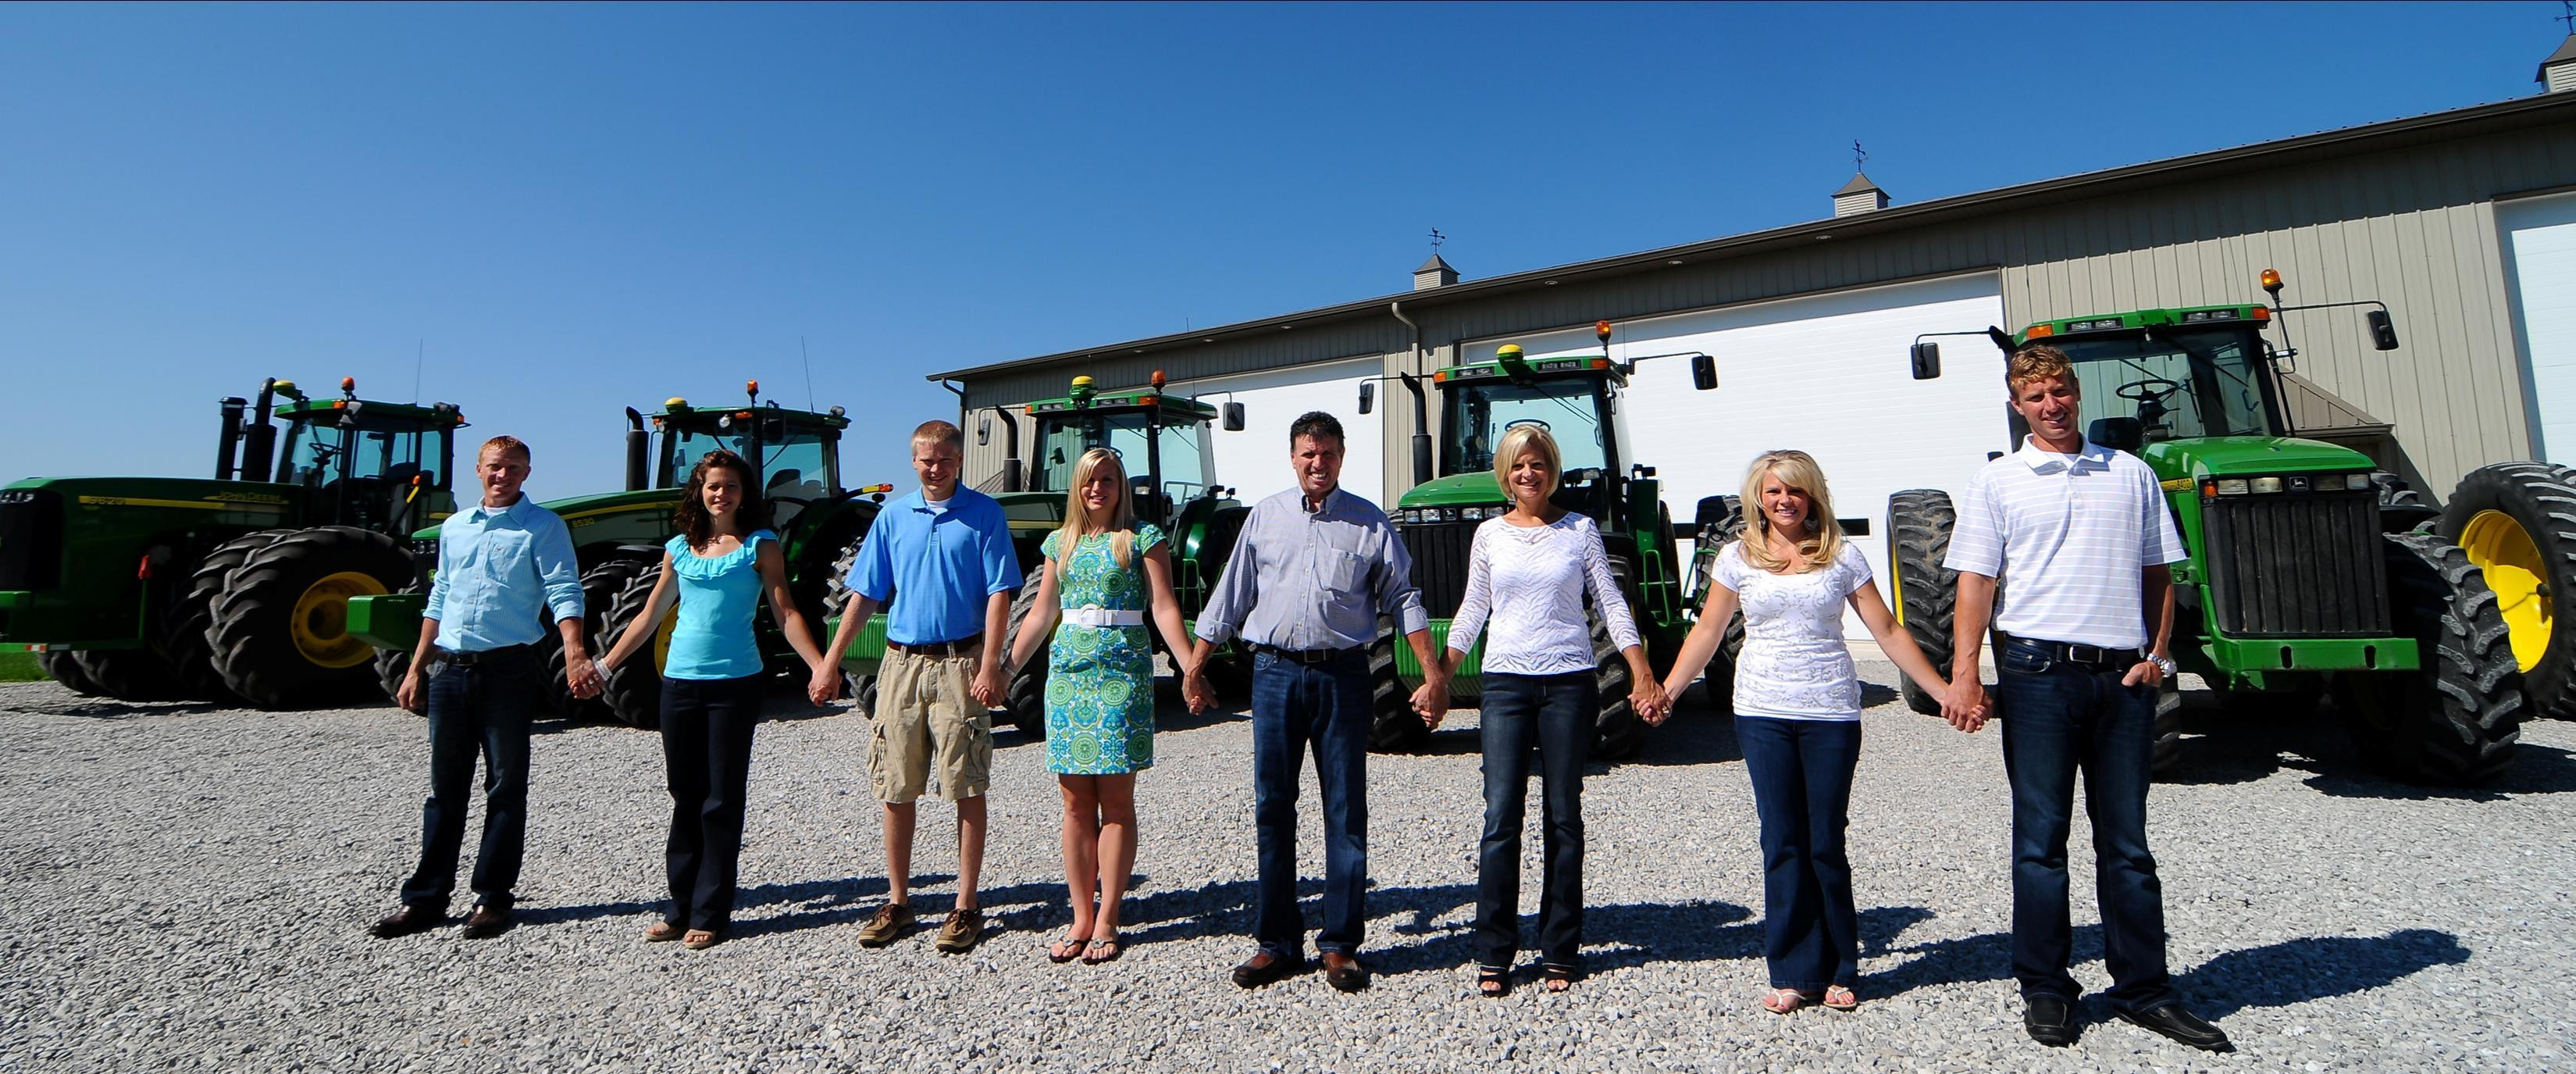 Click image for larger version.  Name:Stafford Farms 2.jpg Views:46 Size:680.5 KB ID:17821